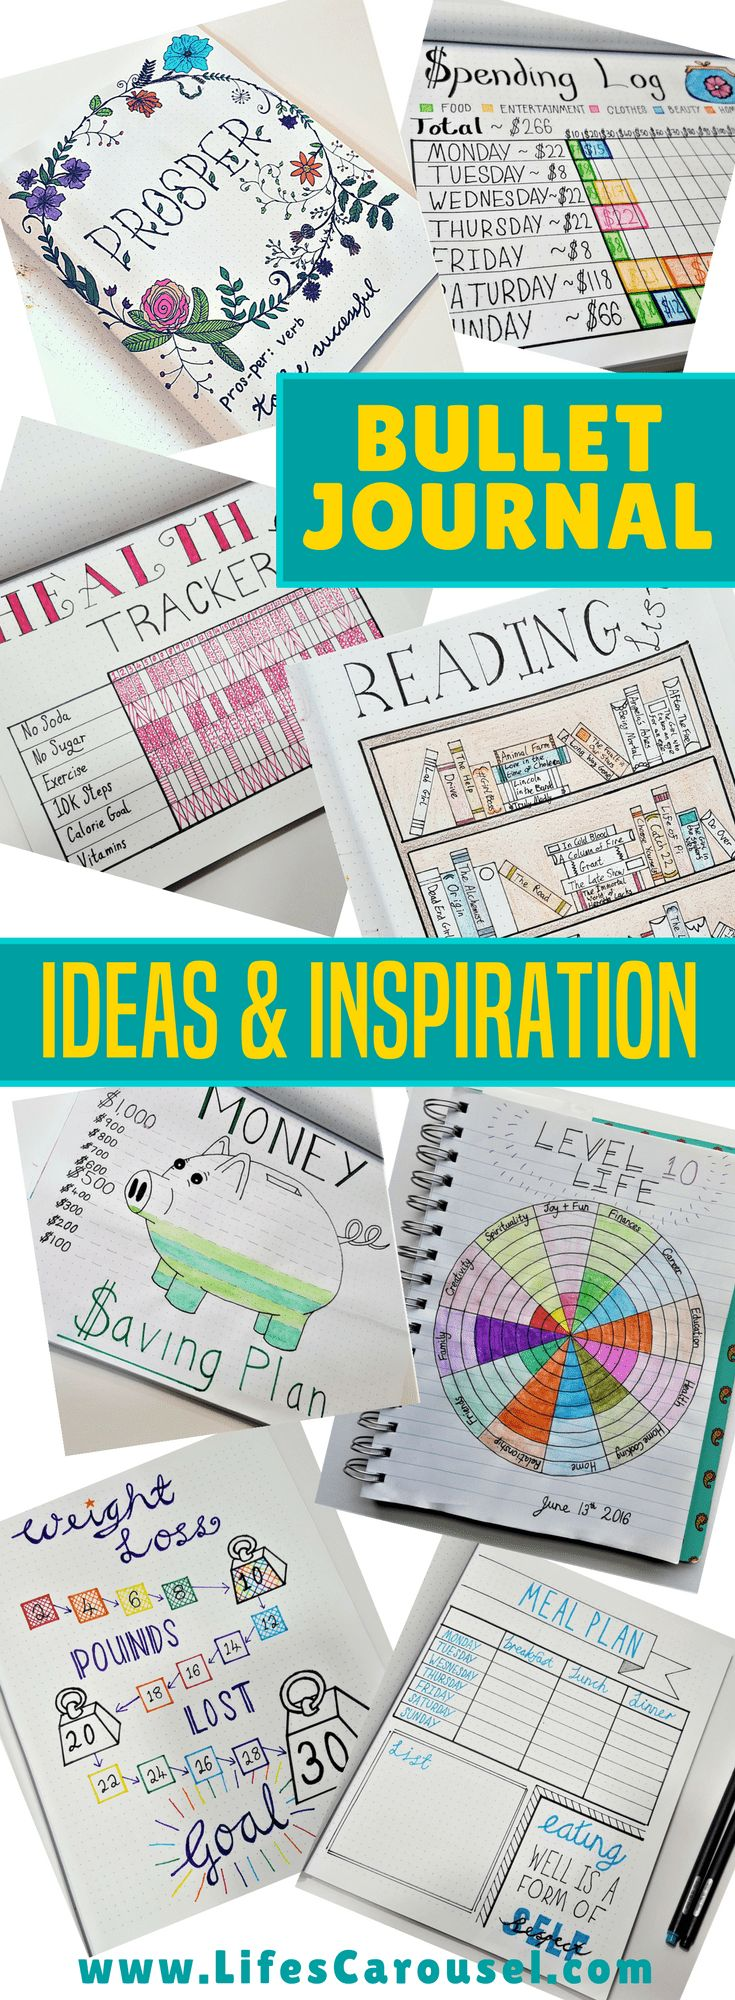 Bullet Journal Inspiration   Ideas for your BuJo - spreads, layouts, trackers and more! Everything from how to start a bullet journal to ideas for trackers and spreads. The ultimate planner collection!